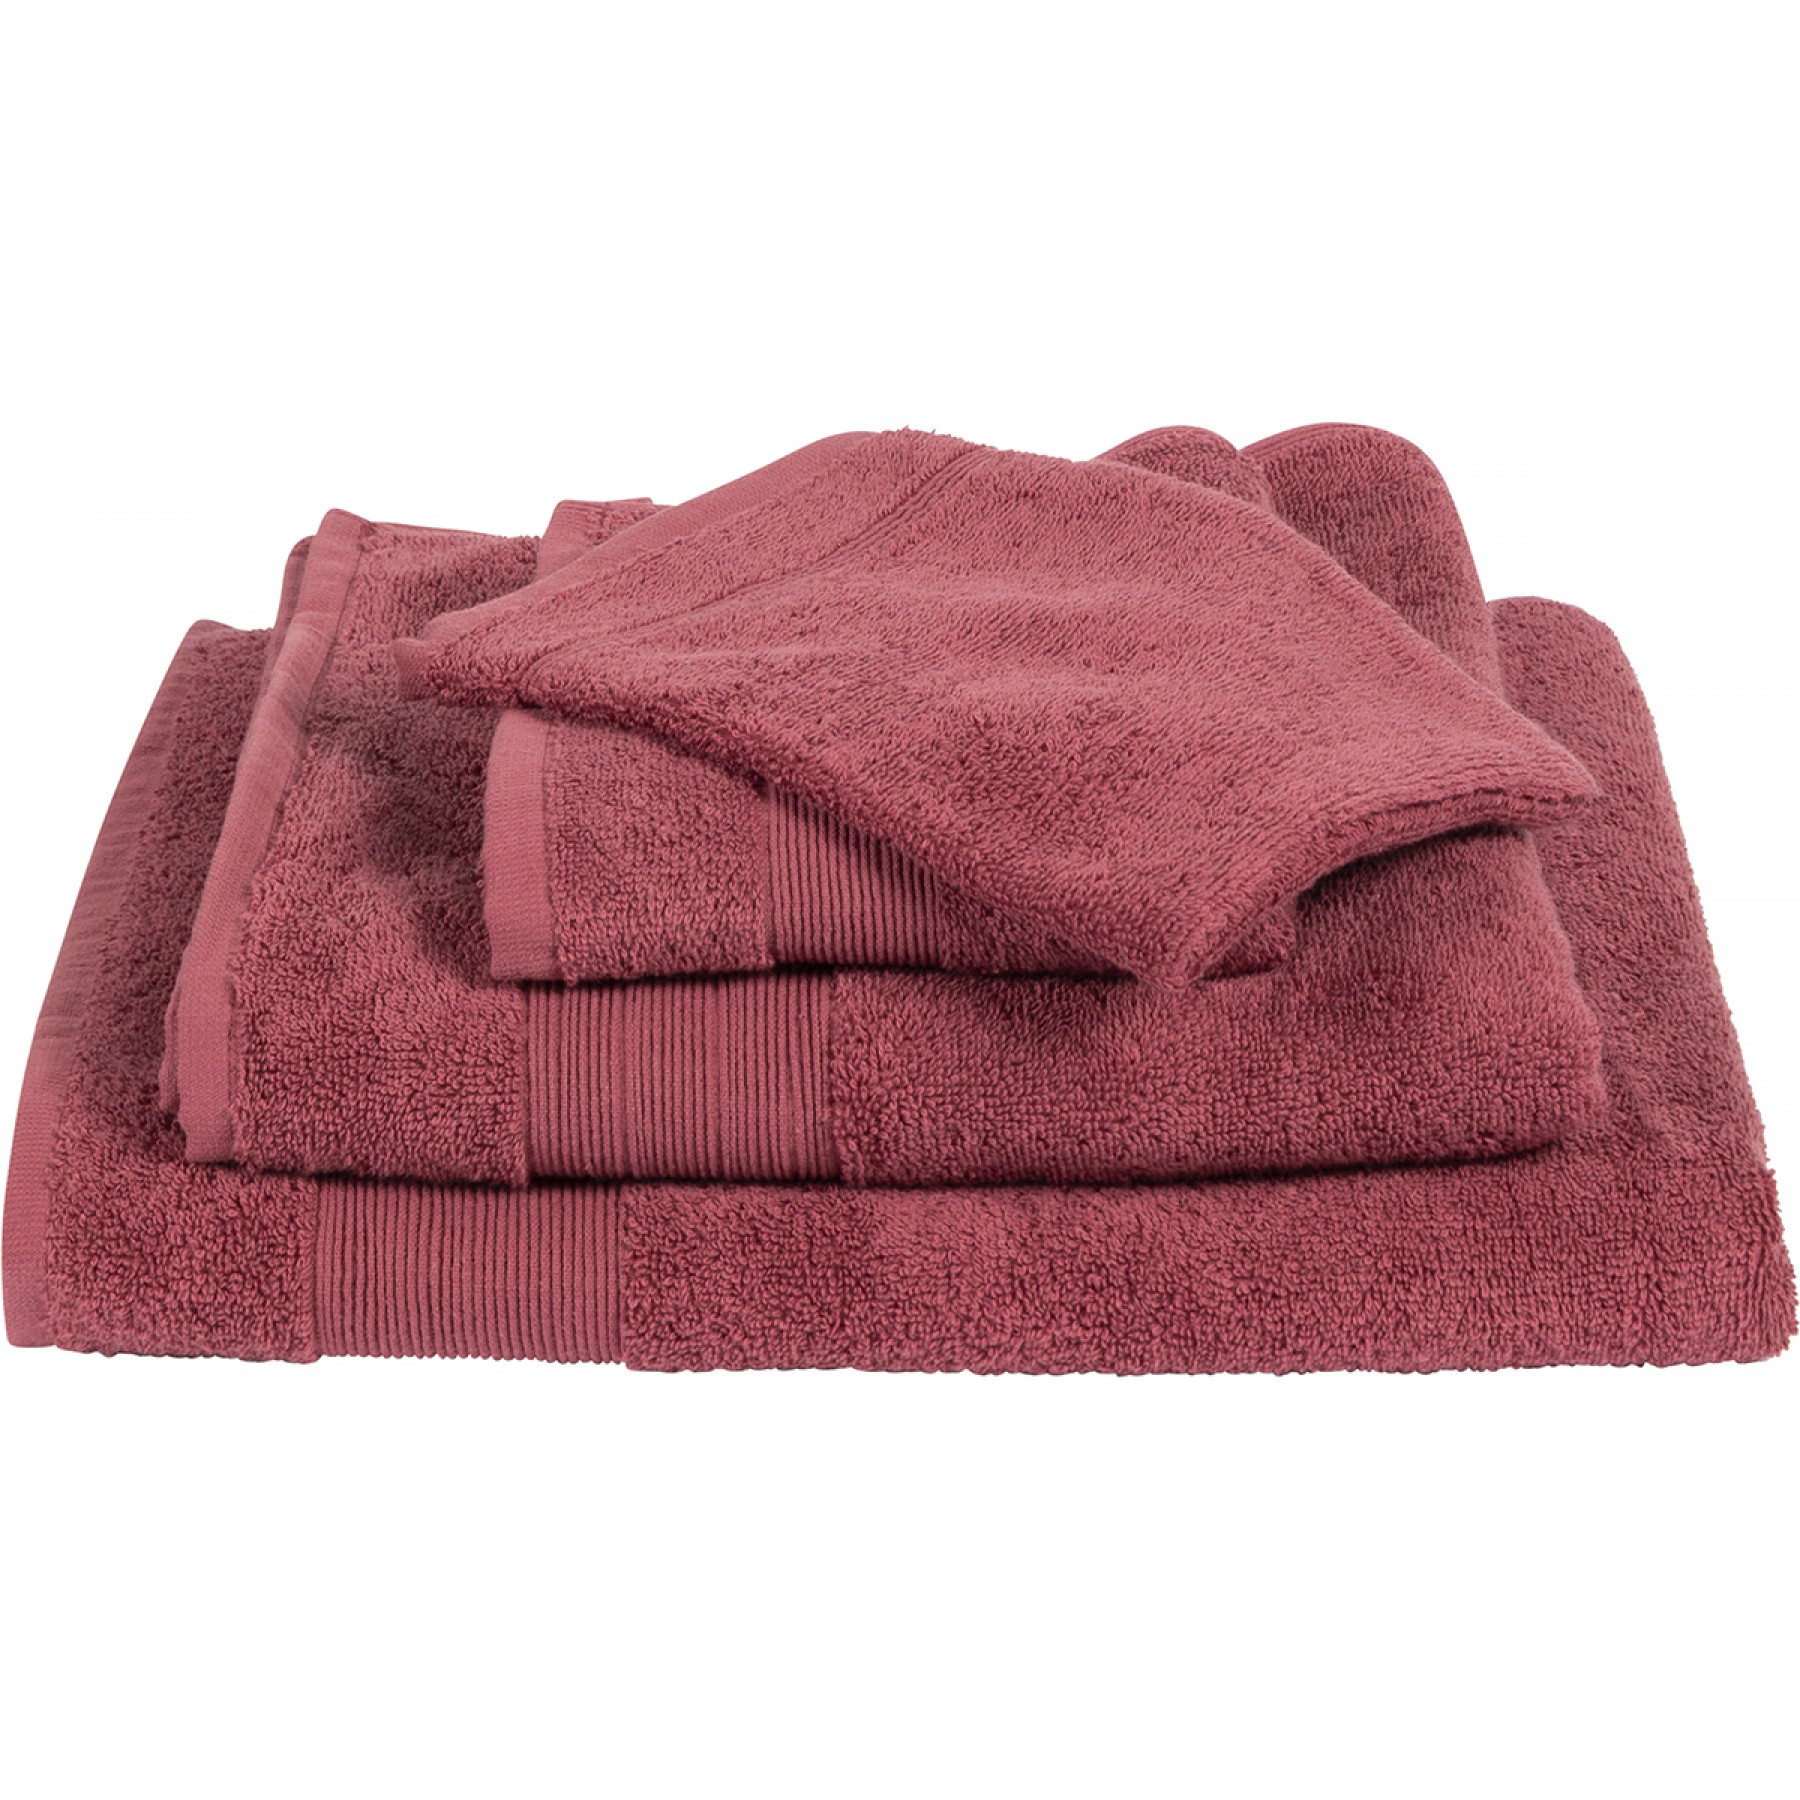 Livello Washand Home Collection Cherry